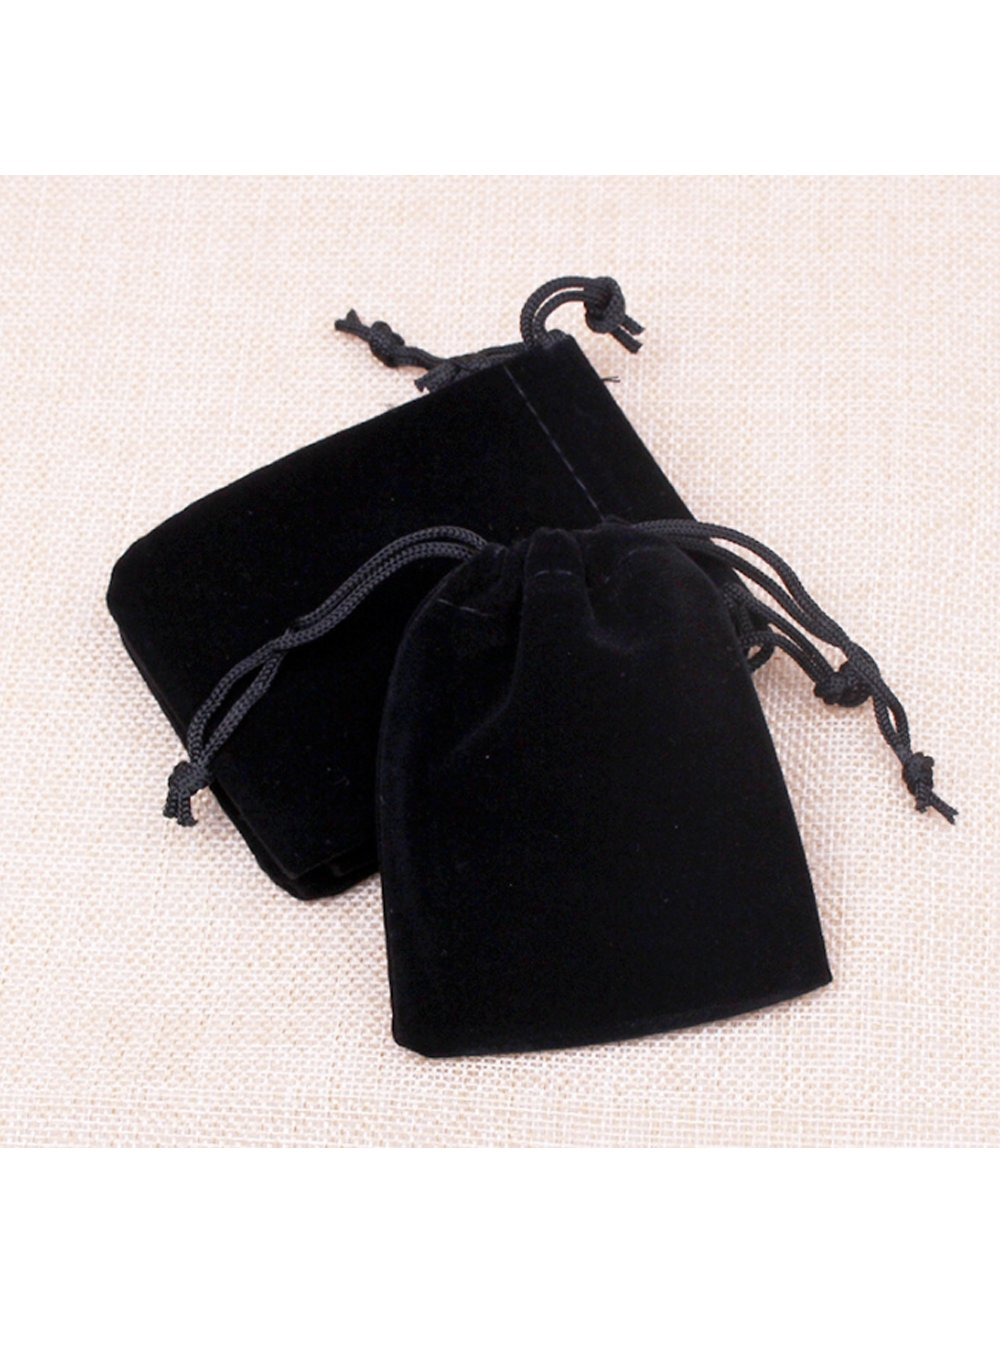 99d0b488fcac Amazon.com: OAIMYY Black Velveteen Drawstring Pouch Bag for Jewelry ...